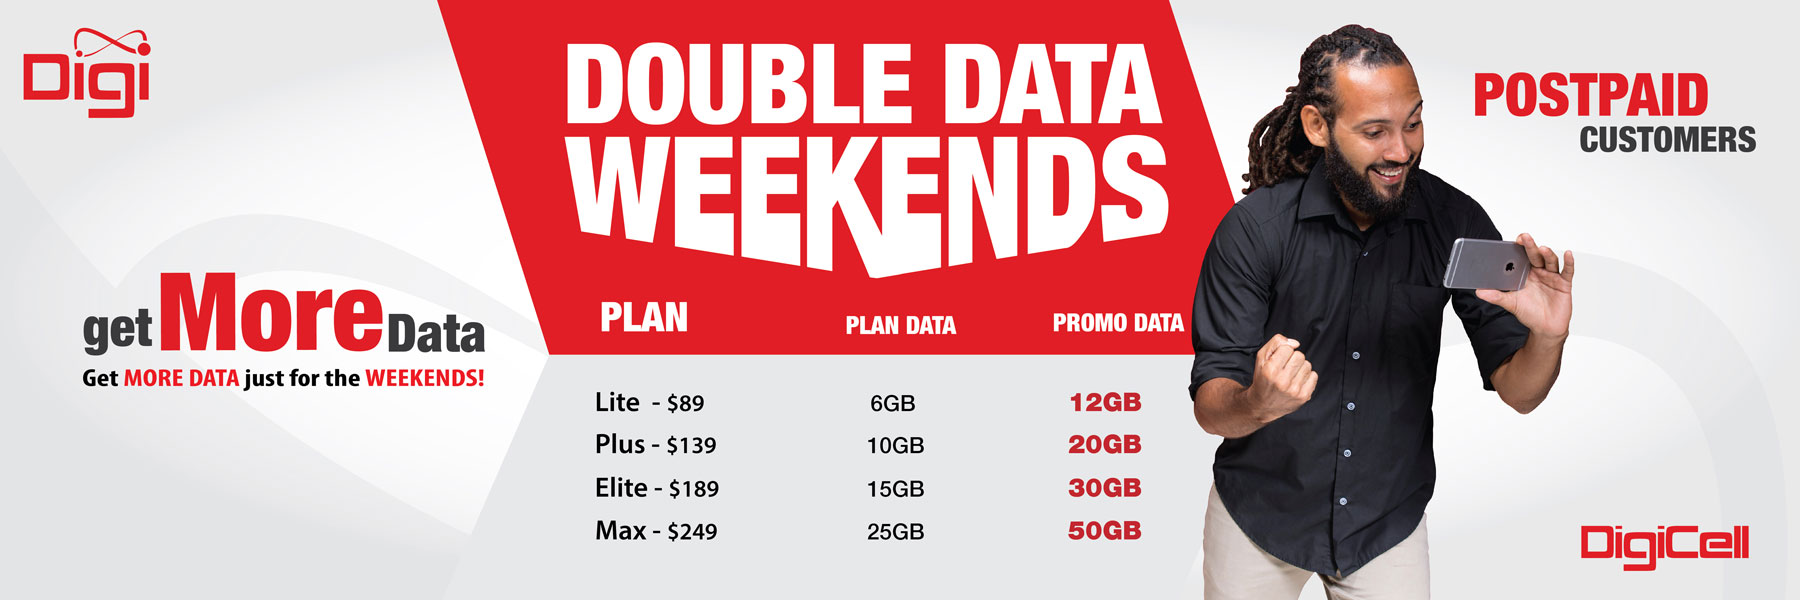 Double Data Weekends